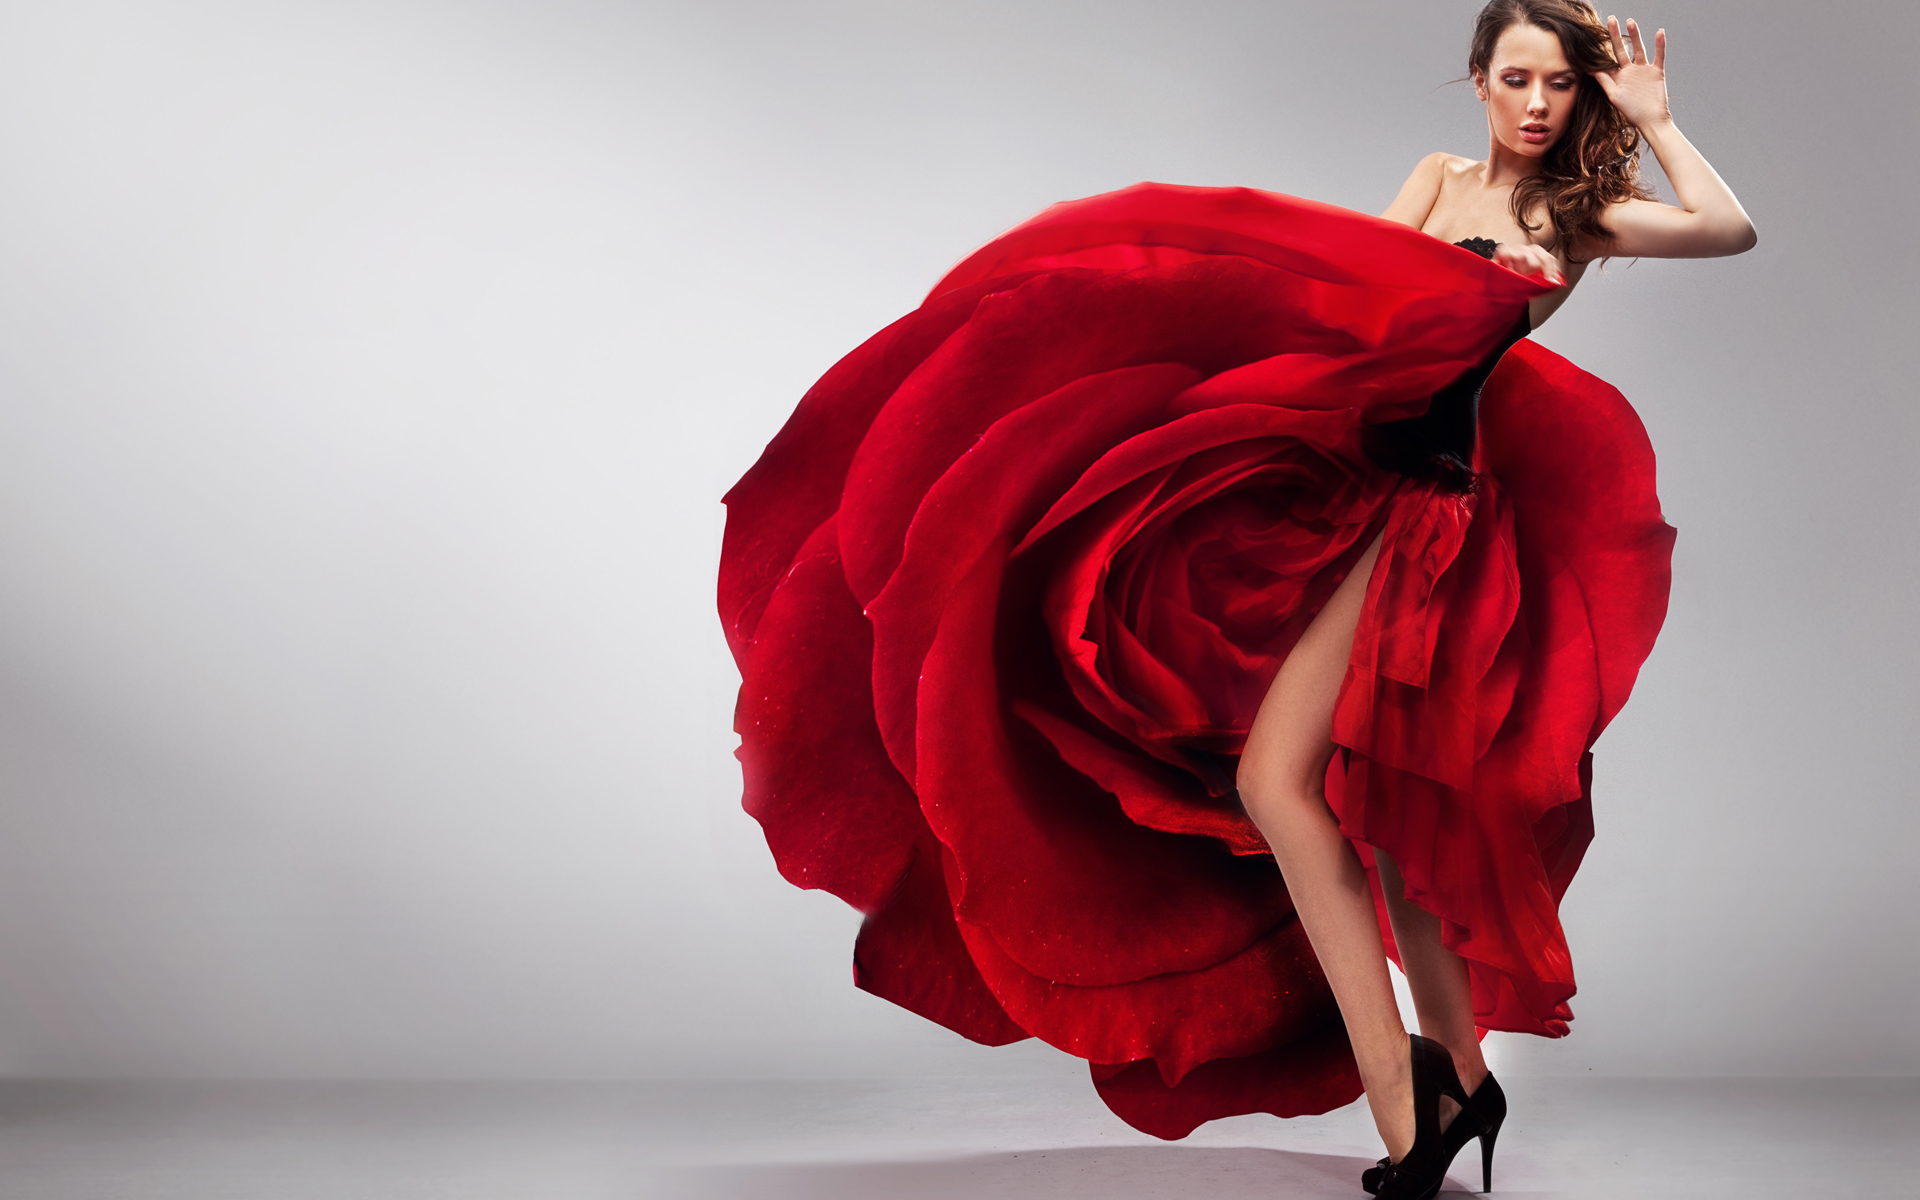 Dress Wallpaper 35577 1920x1200 px